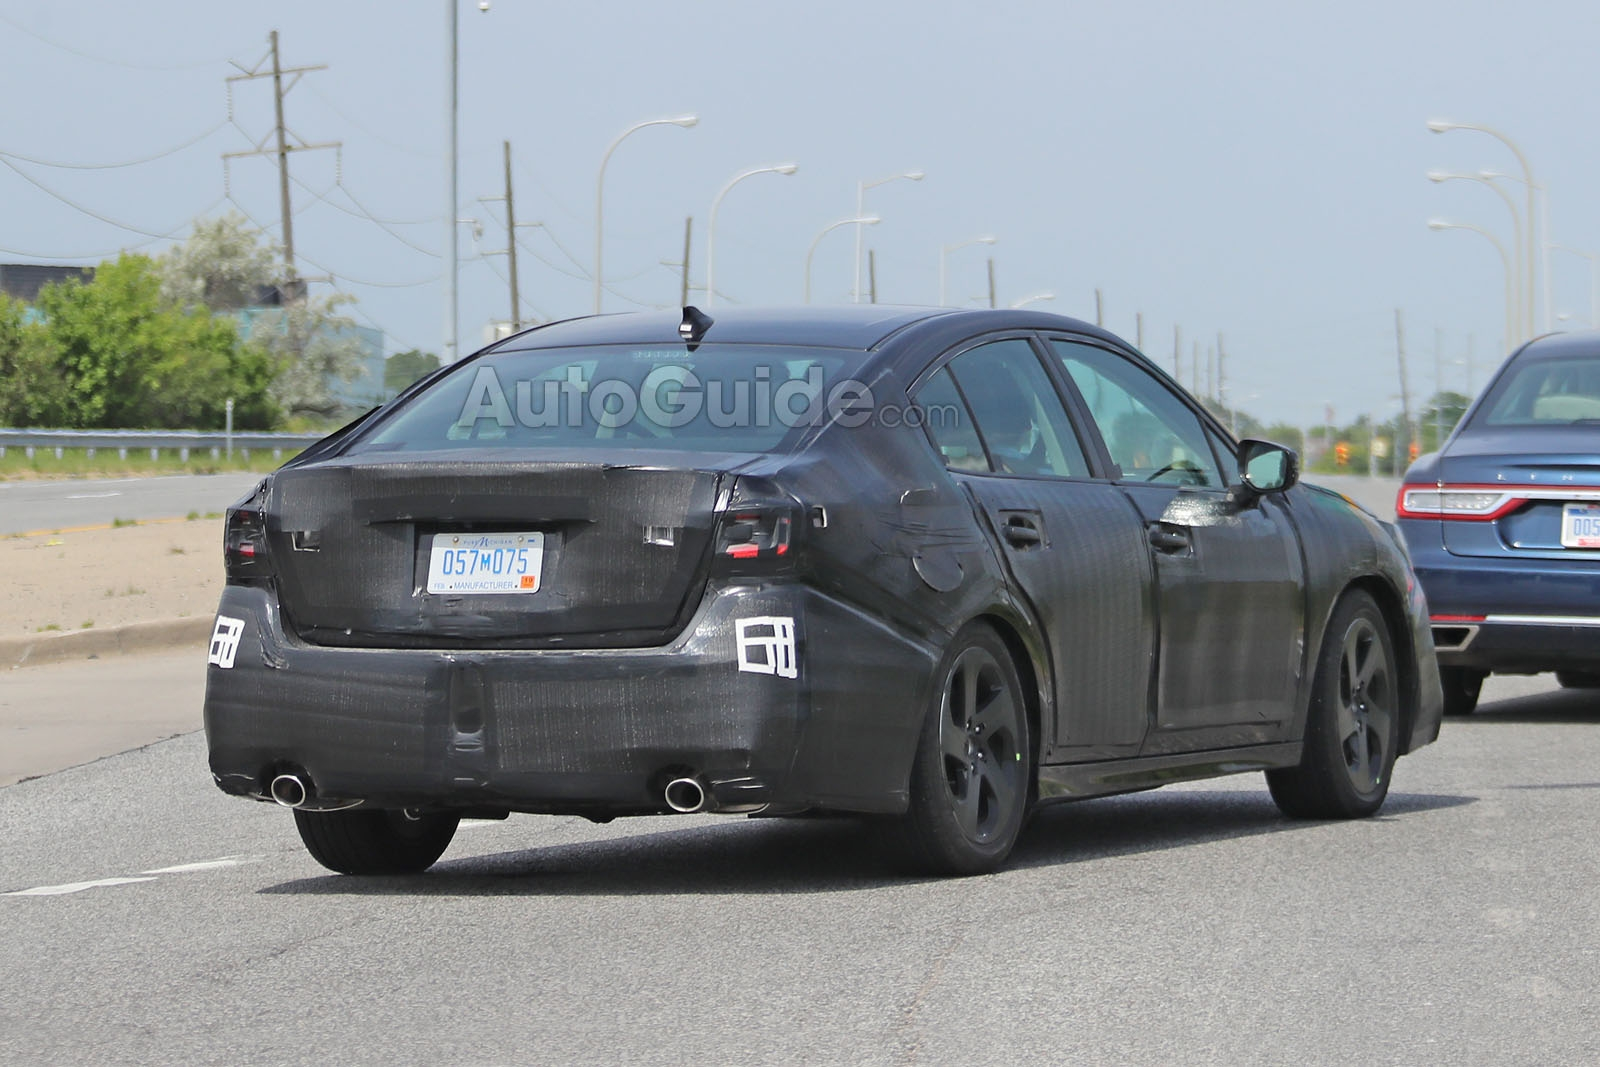 2020 Subaru Legacy Spied Looking More Chiseled » AutoGuide ...